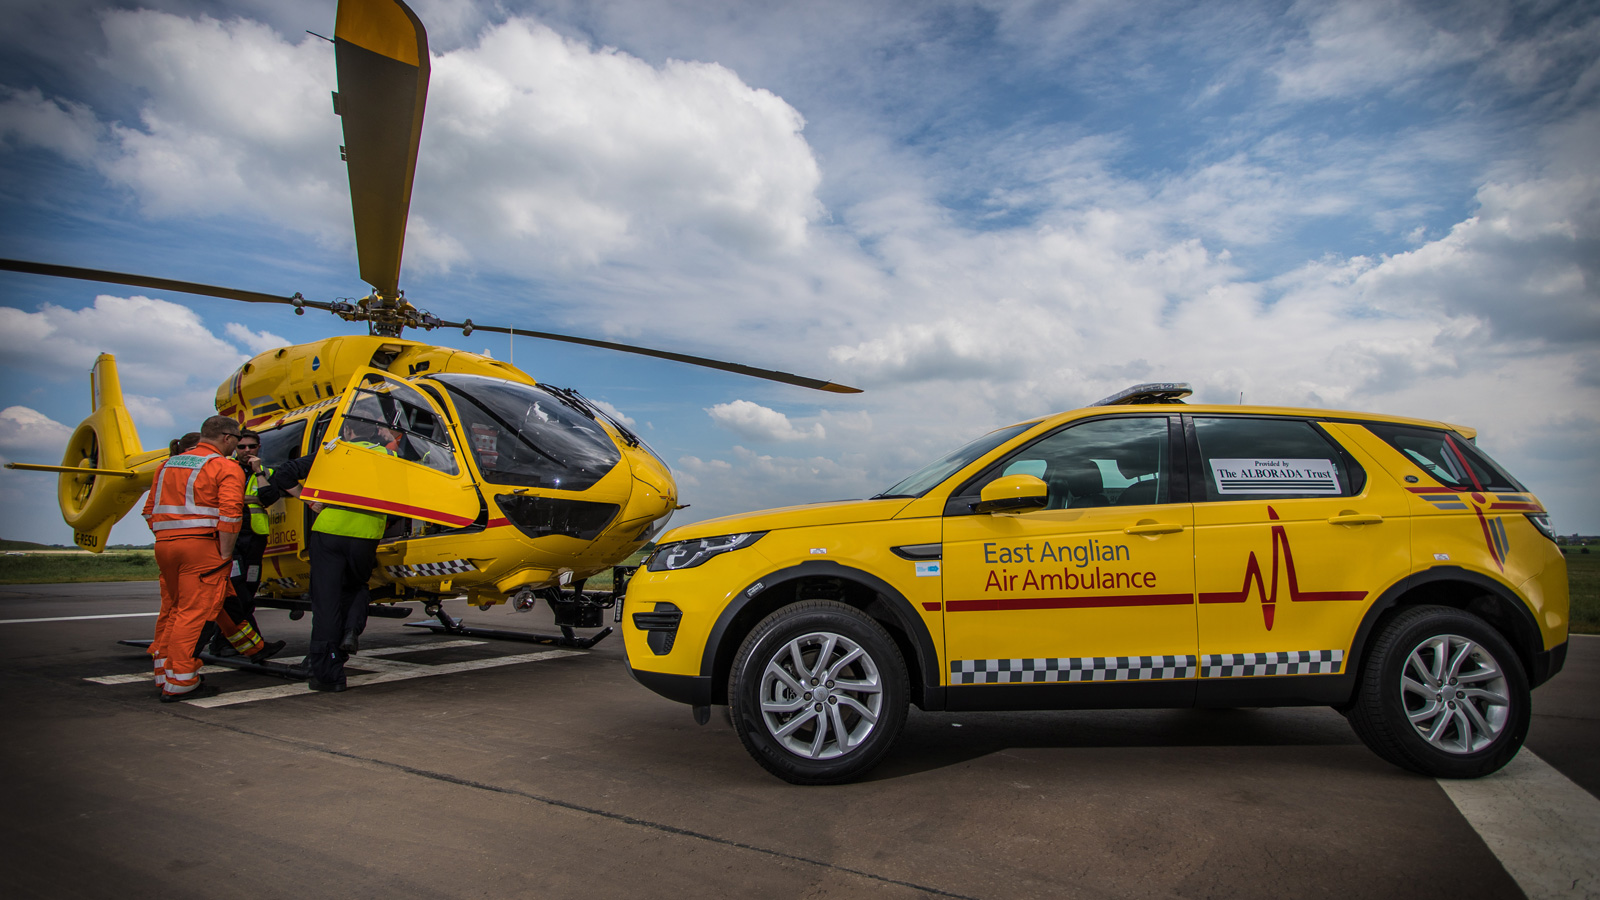 Grants from Trusts | East Anglian Air Ambulance